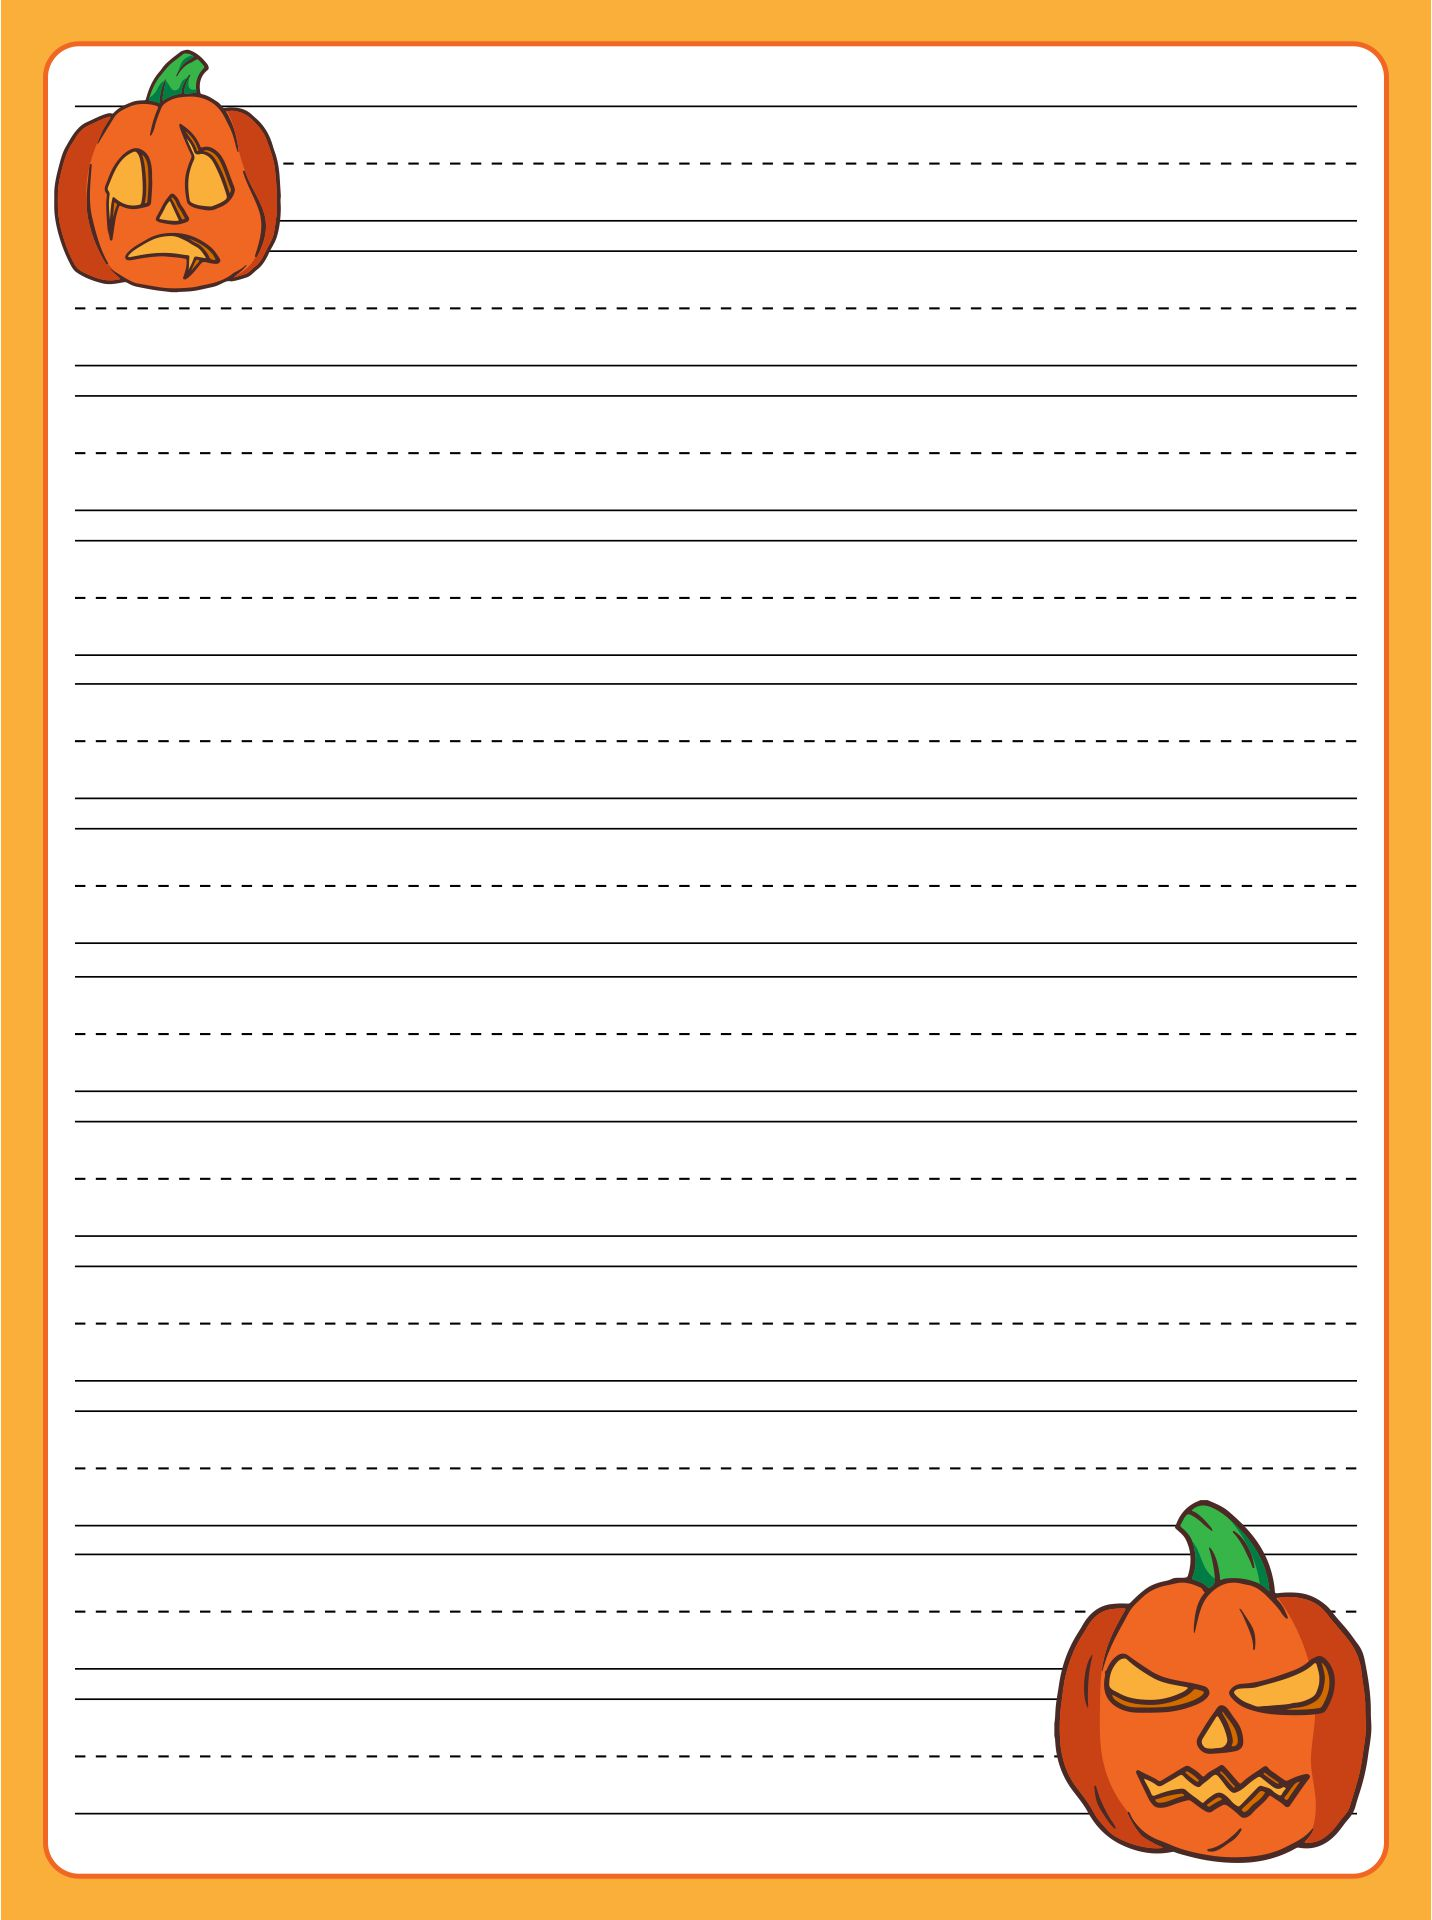 7 Images of Halloween Writing Paper Template Printable